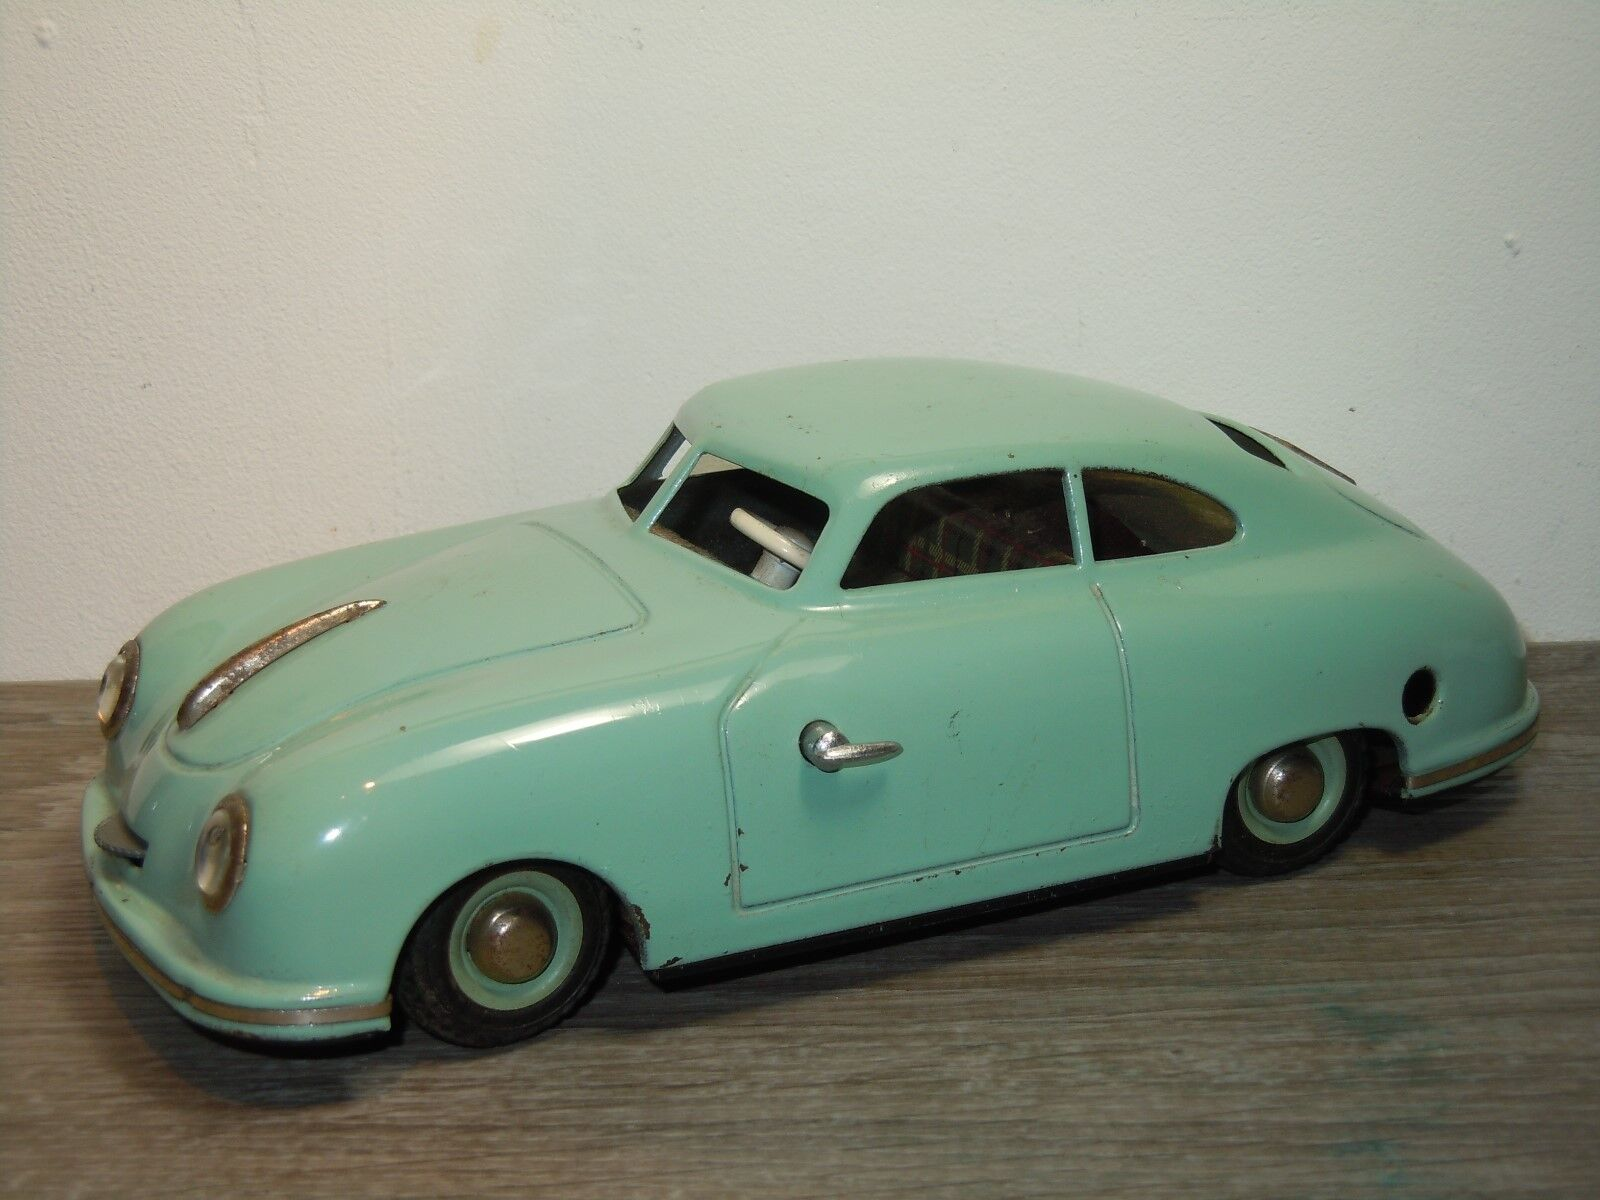 Porsche 356 Coupe-tinplate JNF prossootipo windup Germany 1 19  34512